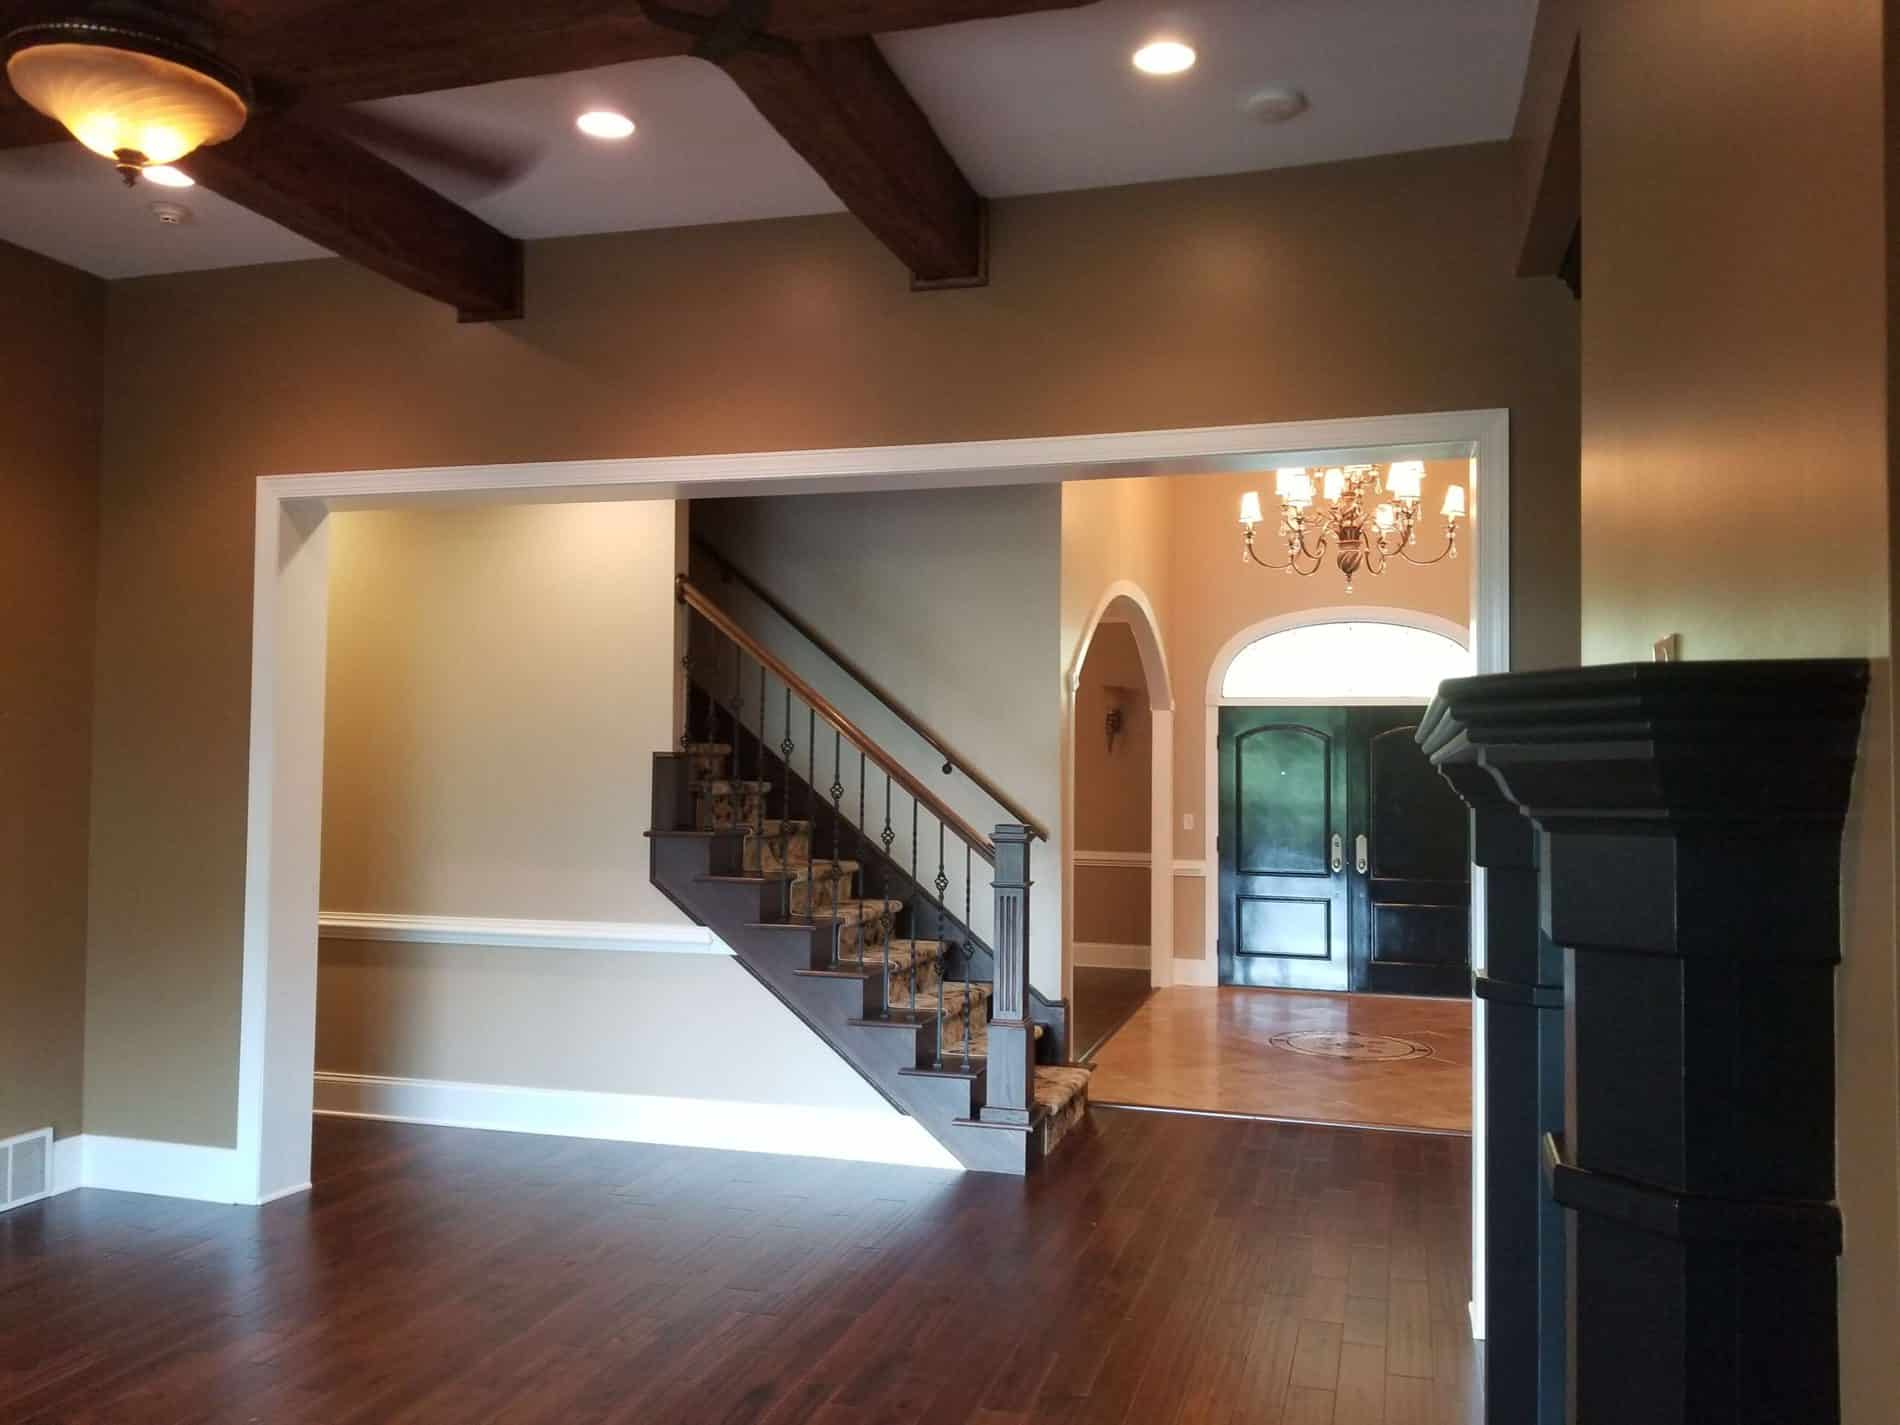 Living room restoration contractor in South Charleston